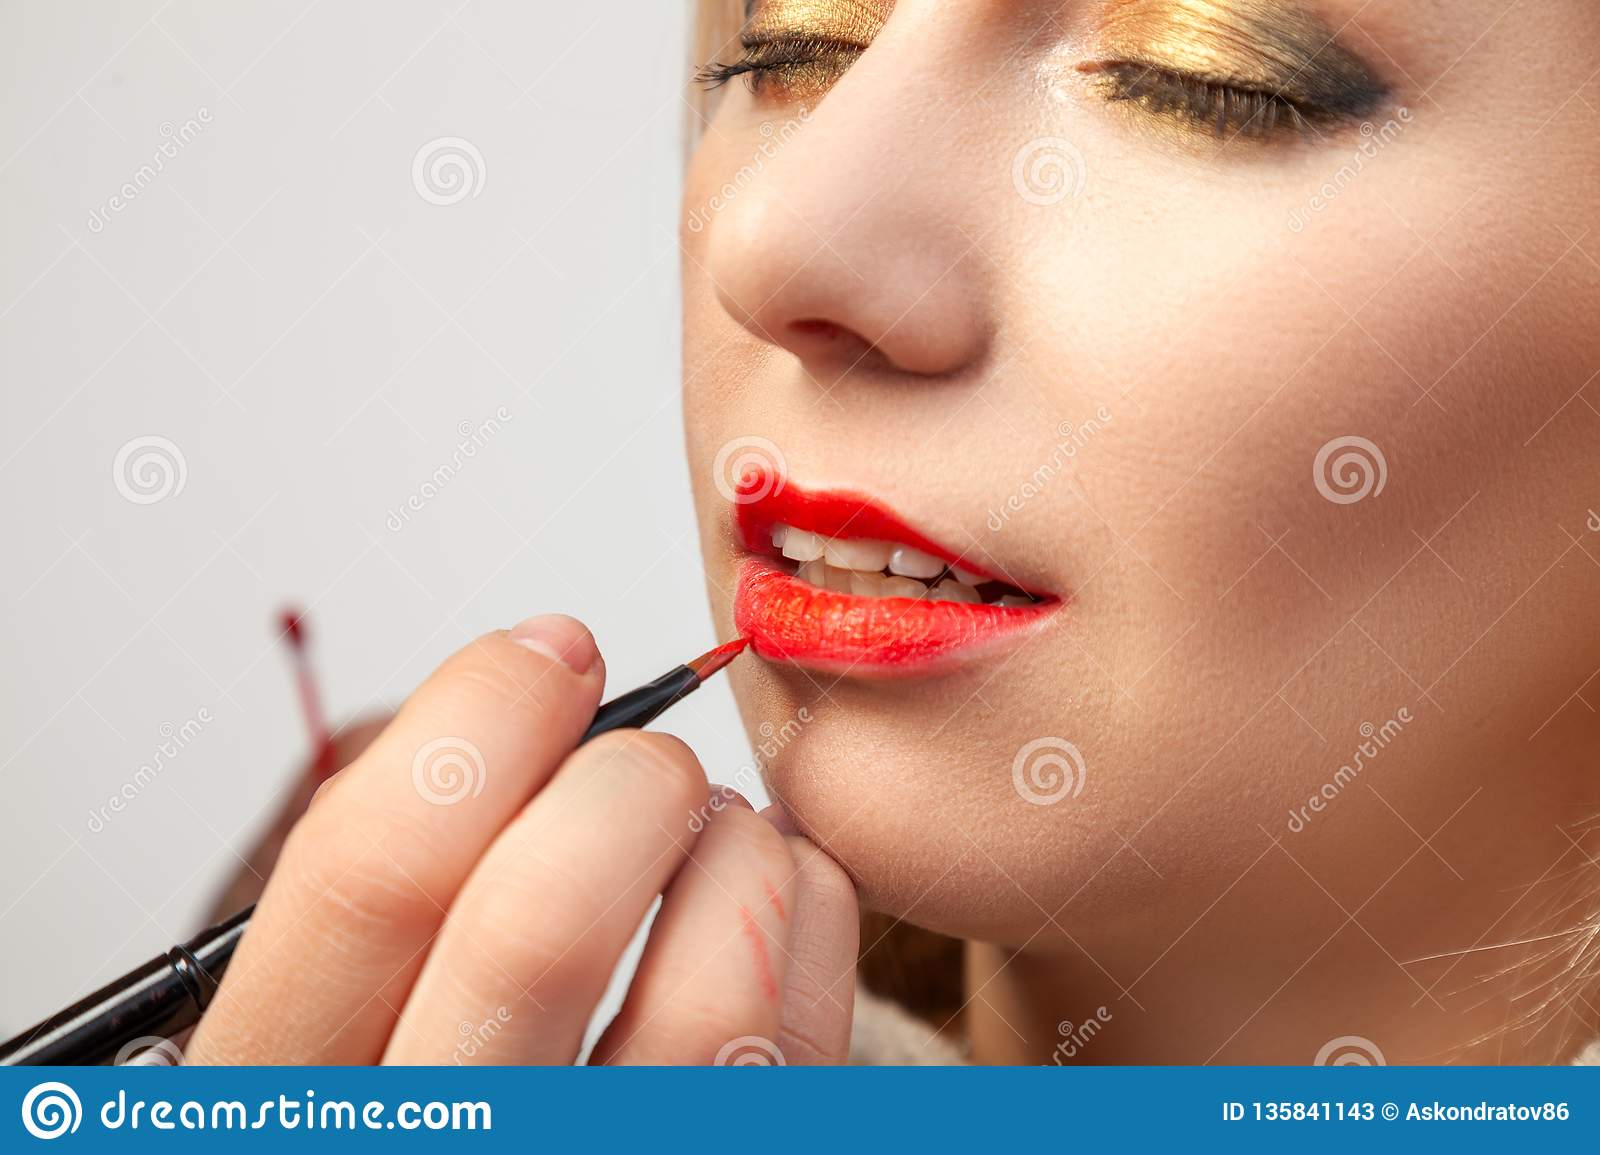 Close-up applying on the lips, the make-up artist holds a brush in her hand and applies red lipstick on the model`s open mouth